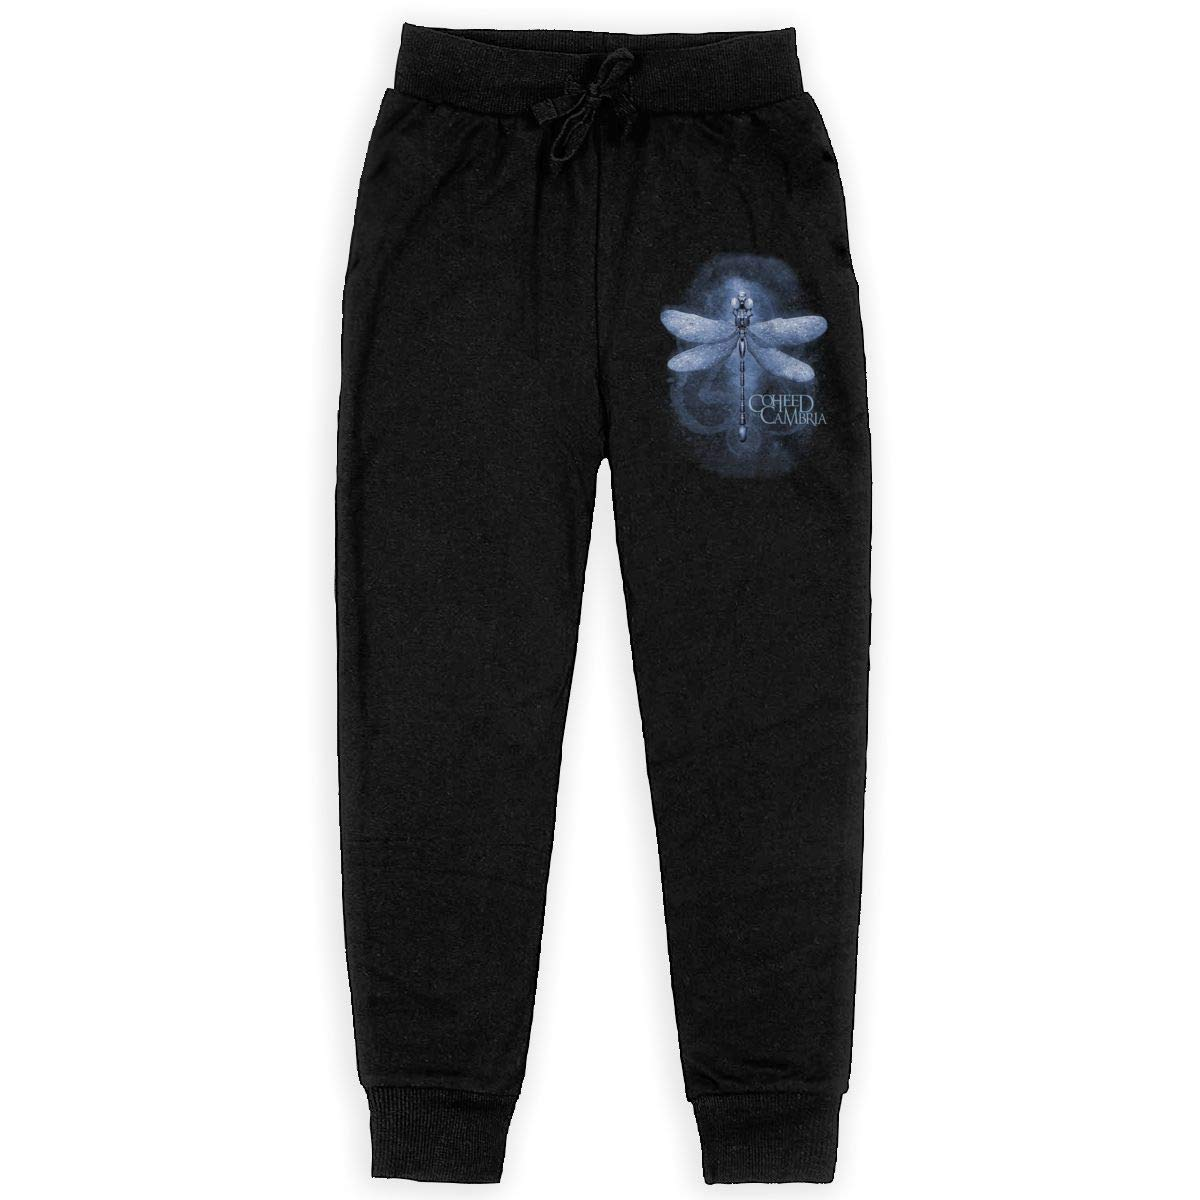 Tangzhikai Unisex Teens Coheed and Cambria Fashionable Music Band Fans Daily Sweatpants for Boys Gift with Pockets